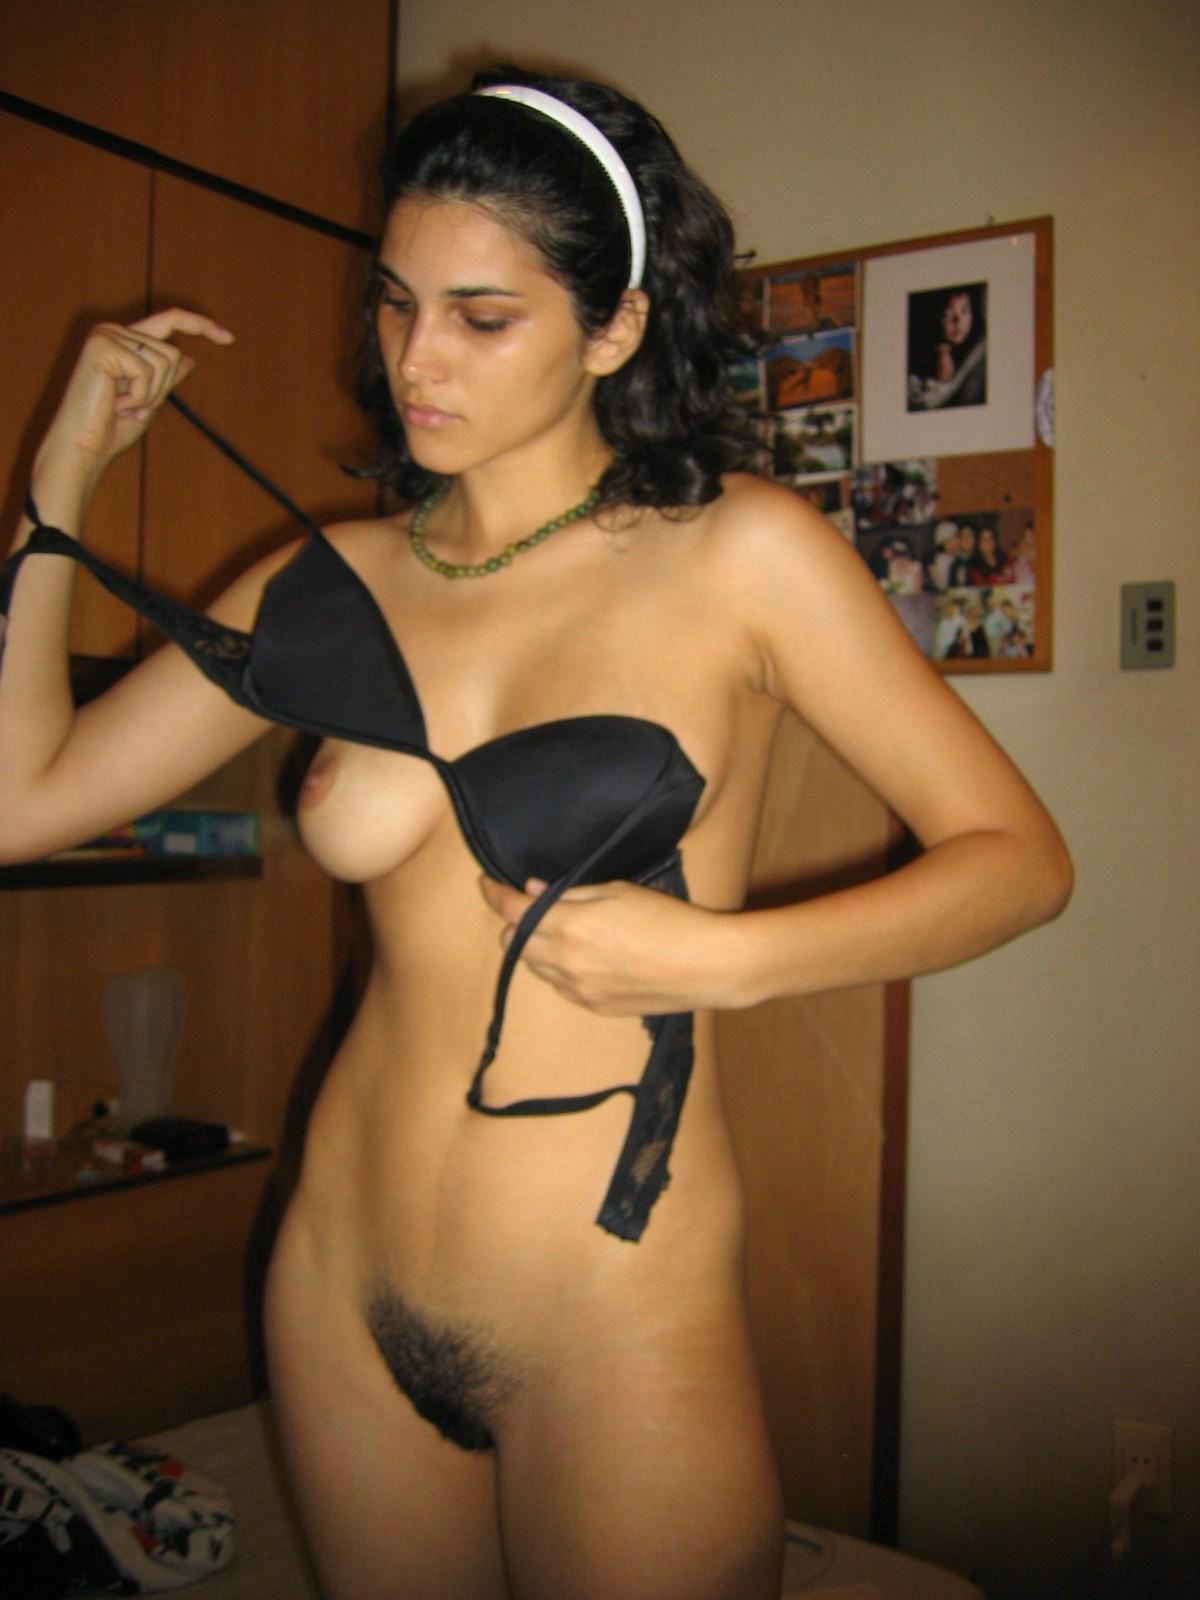 thick young girl naked